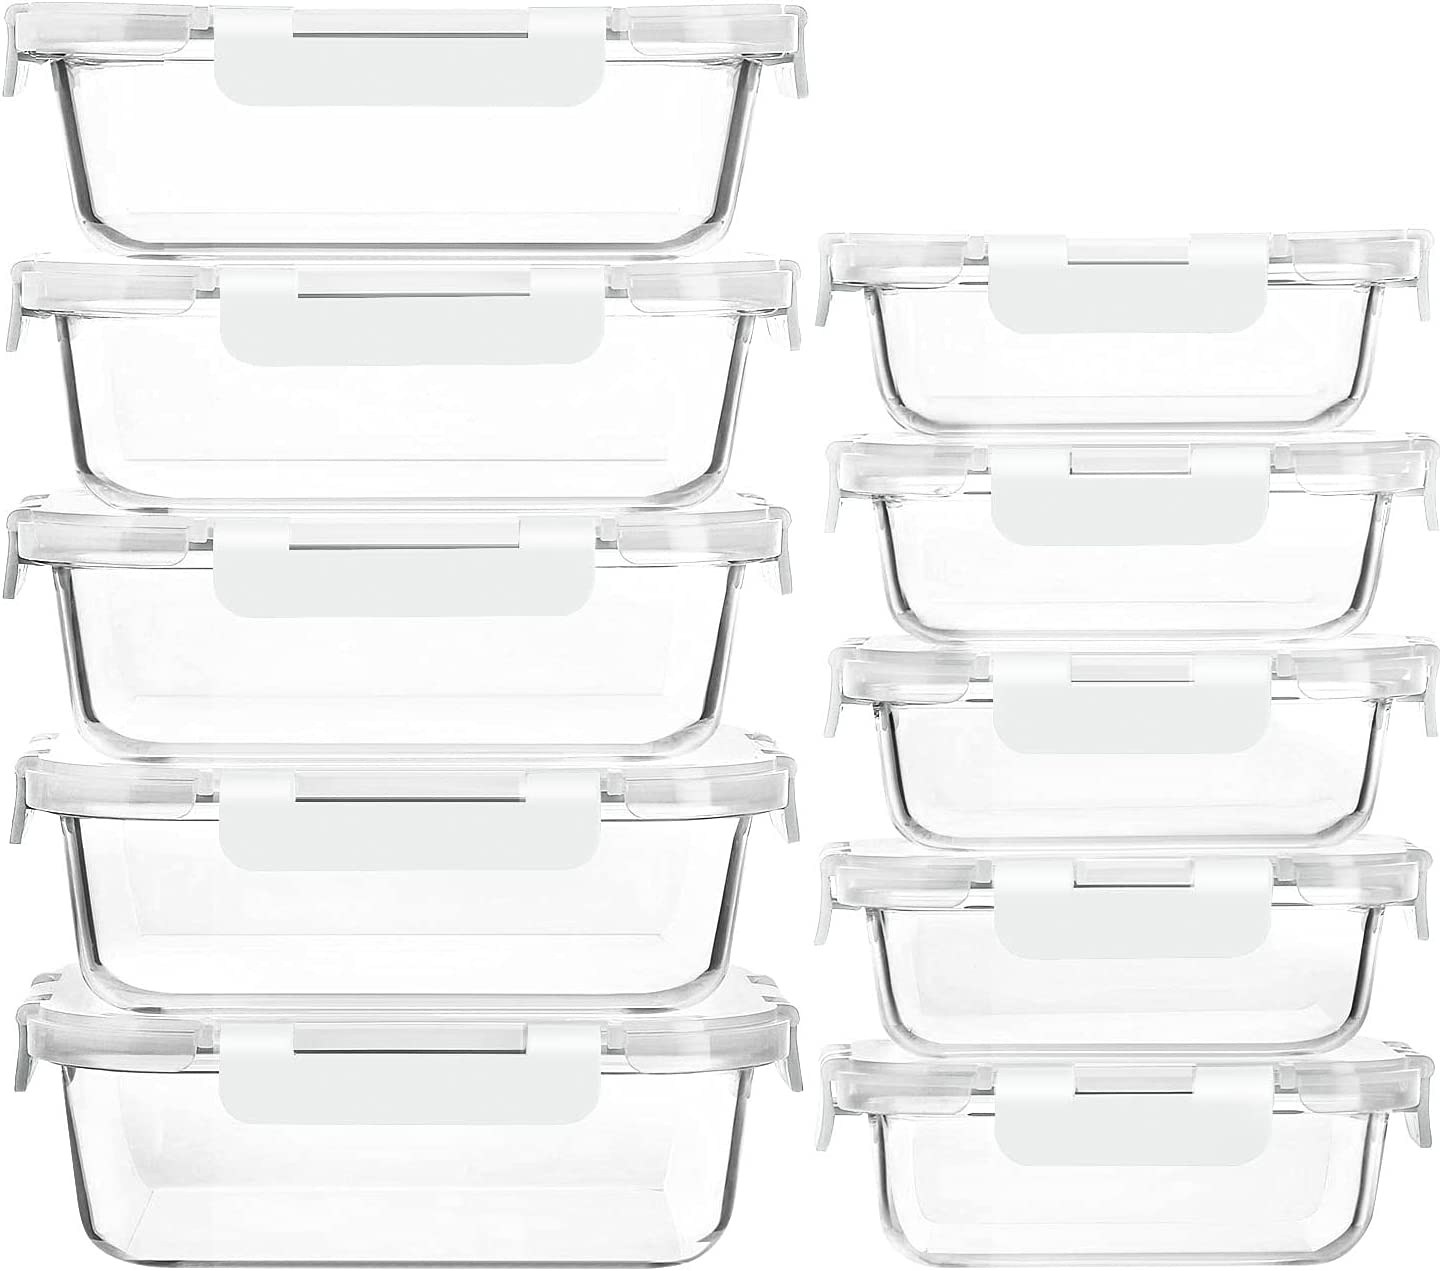 10-Pack Glass Meal Prep Brand Cheap Sale Max 67% OFF Venue Food with Containers Lids-MCIRCO